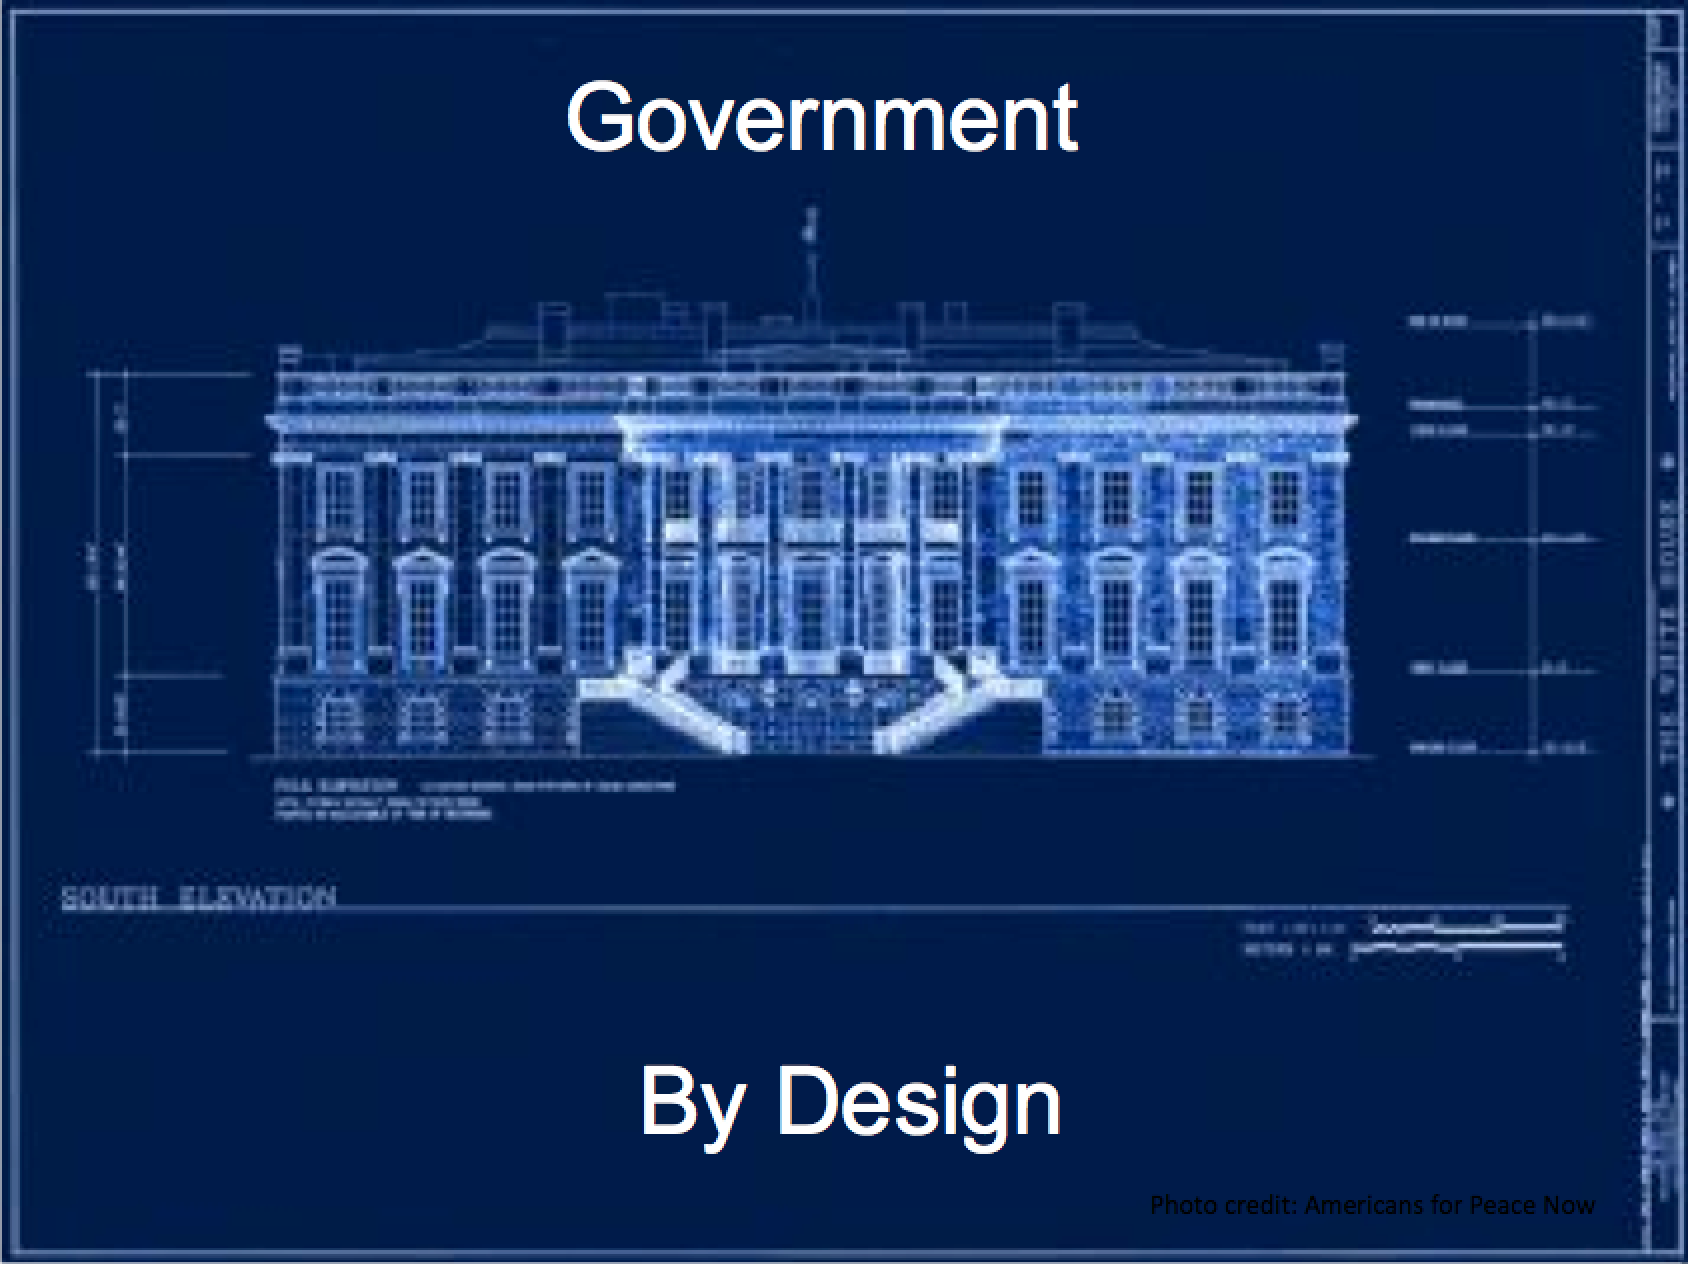 Government by Design